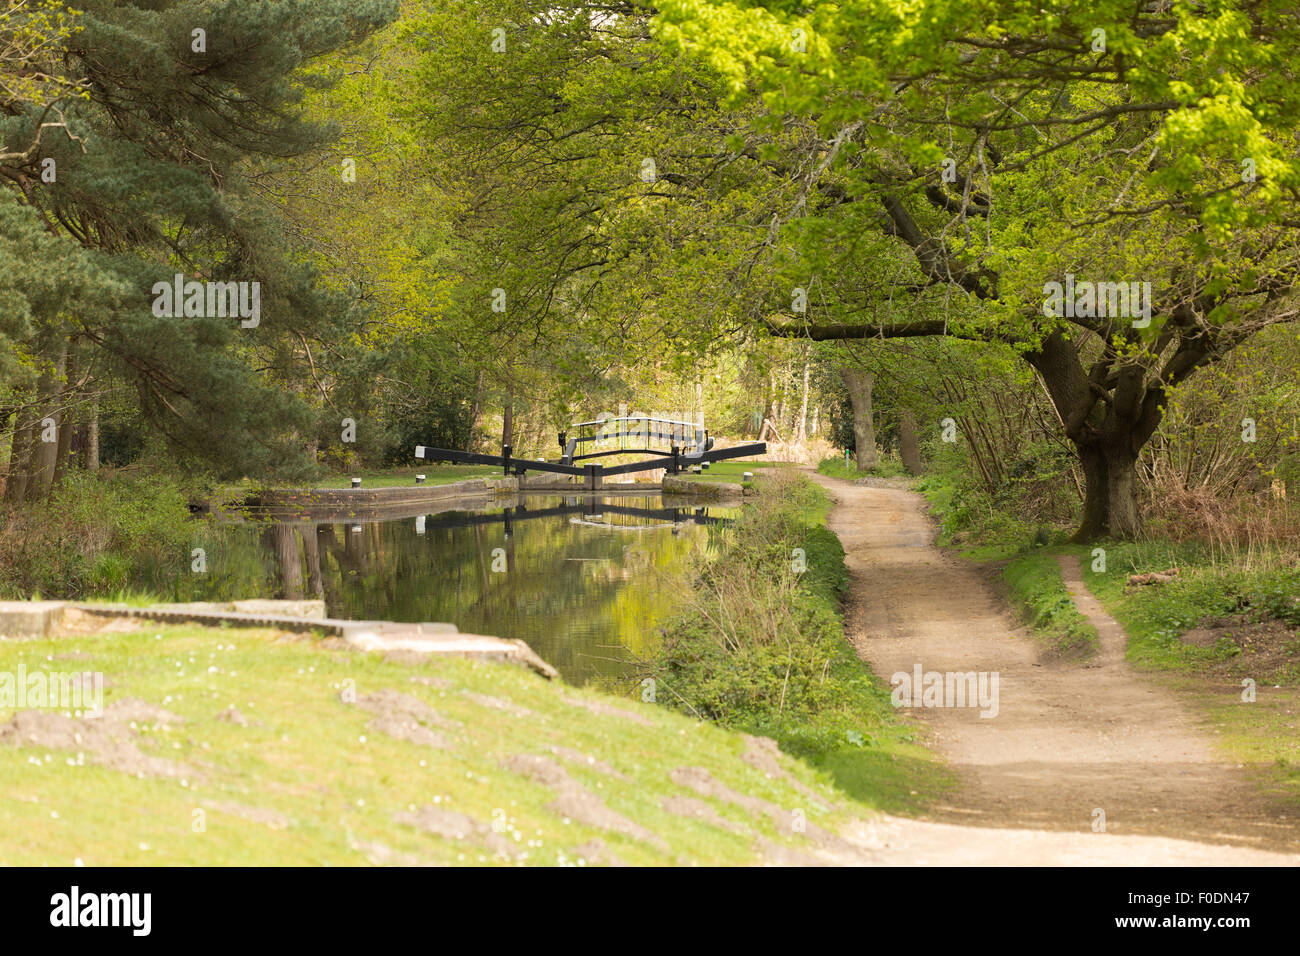 A view of the Basingstoke Canal of a lock, under Spring foliage. - Stock Image